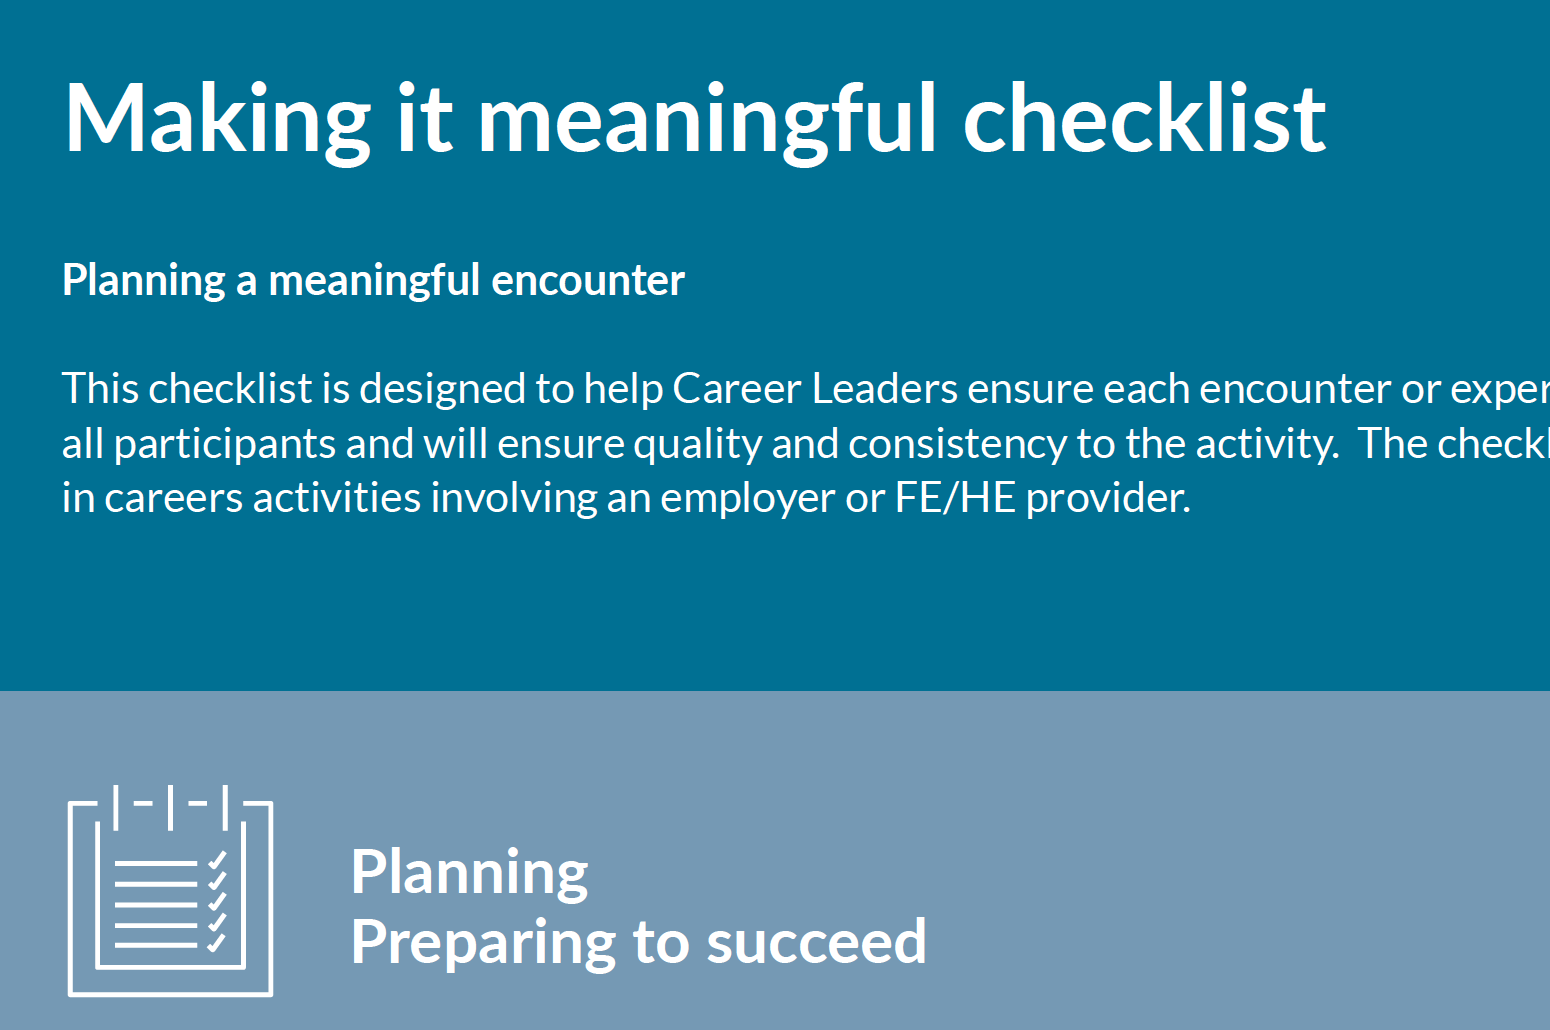 Make it meaningful checklist